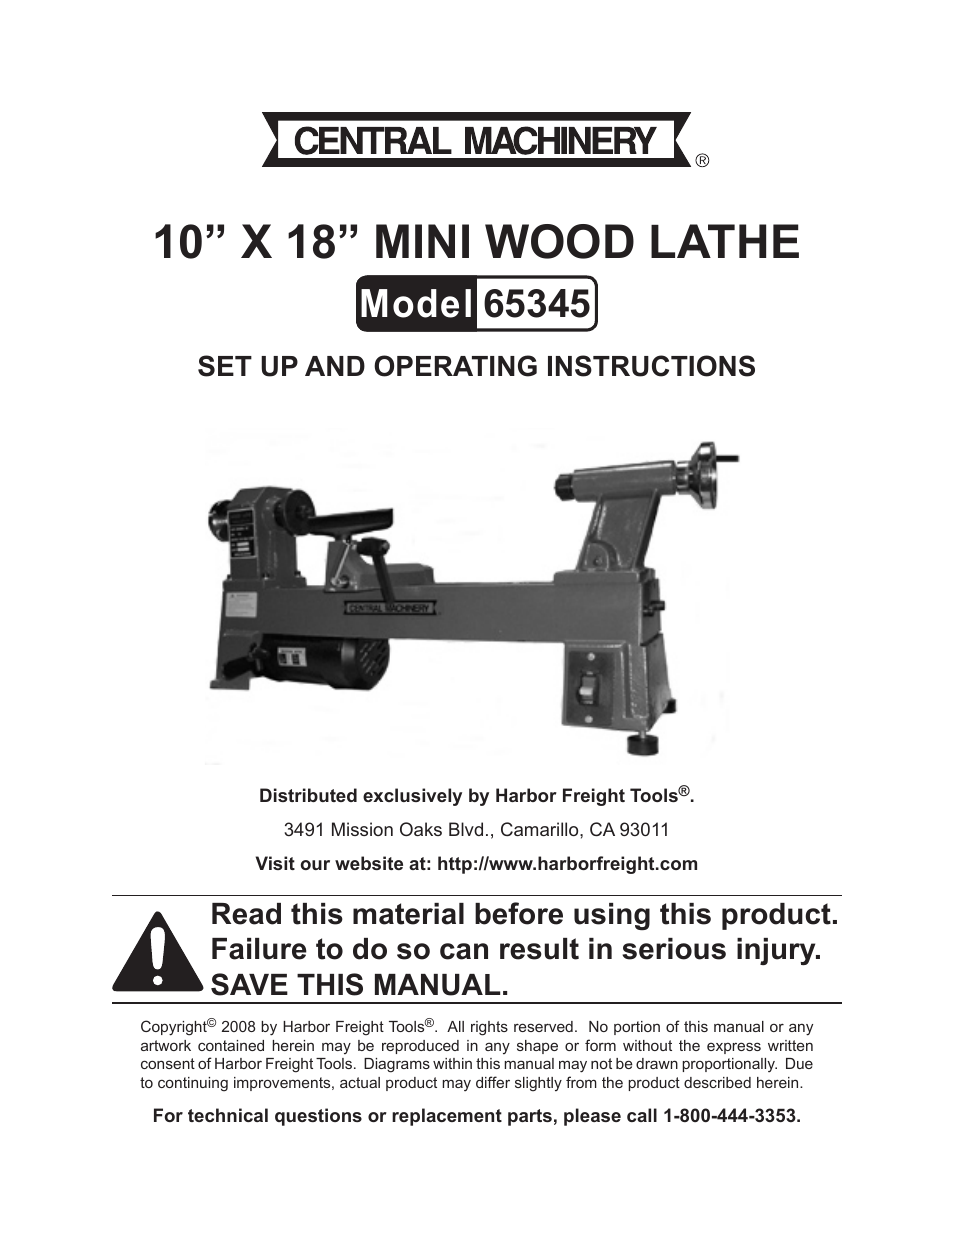 harbor freight tools central machinery 65345 page1 harbor freight tools central machinery 65345 user manual 22 pages